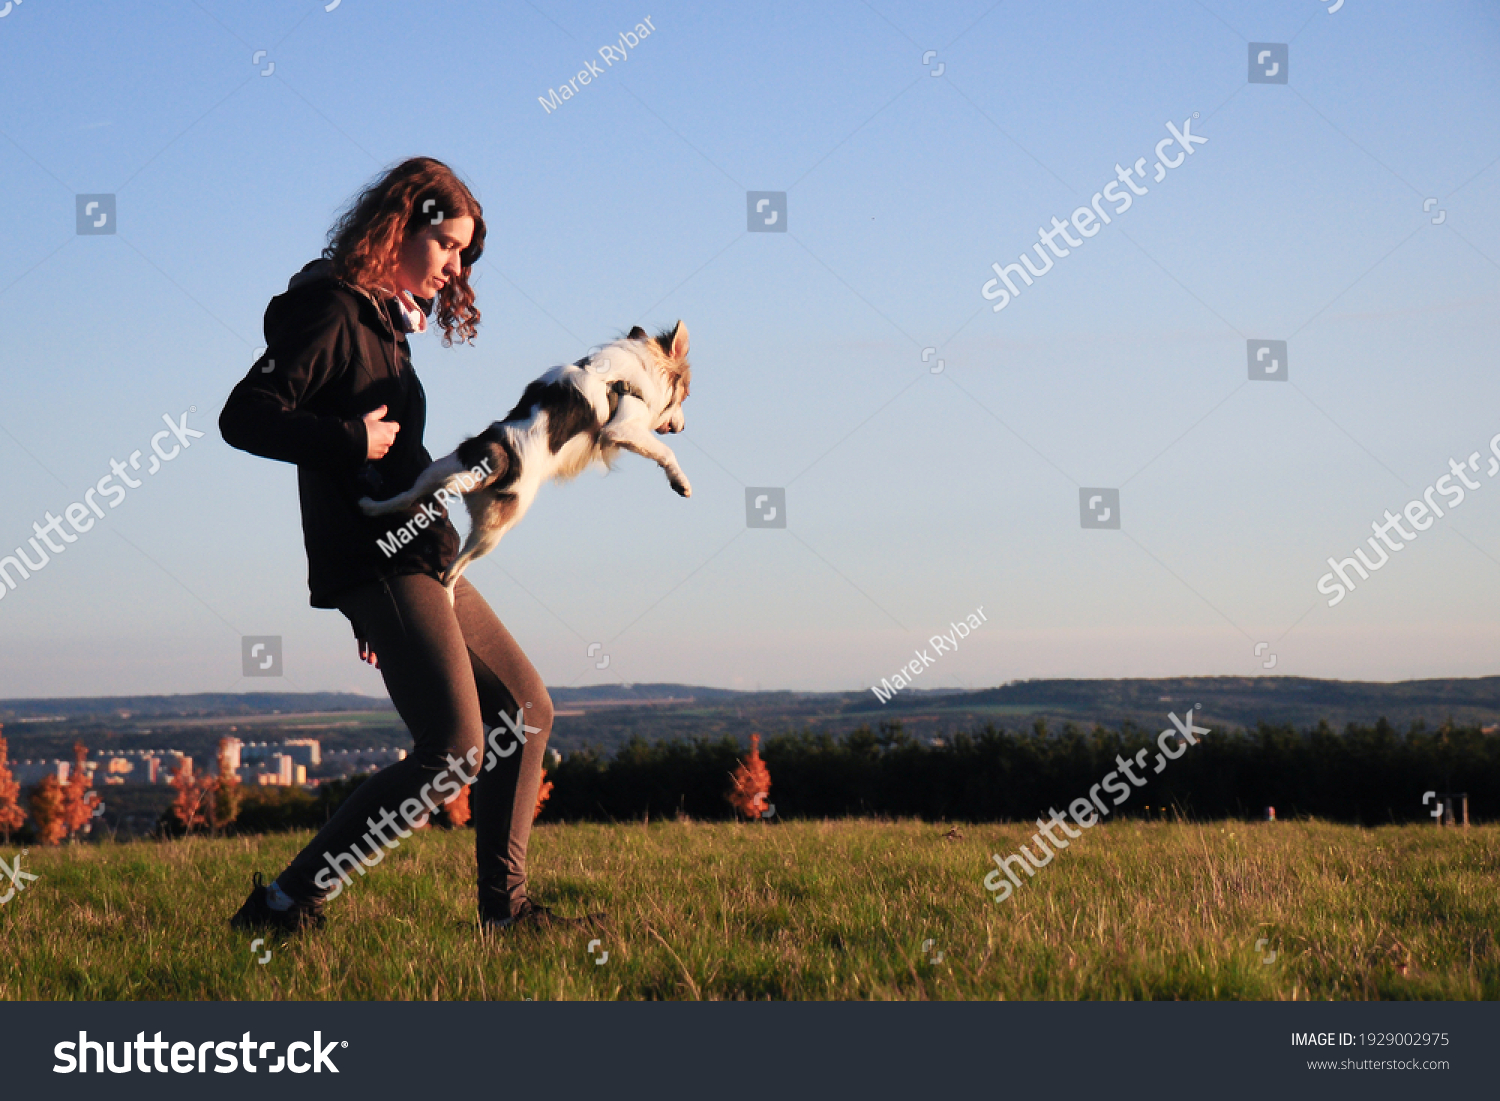 Prague, Czech republic - October 24, 2020: Young woman playing and training with her dog some jumping tricks. Adopted dog from shelter. Sunsetting autumn time with perfectly blue sky.